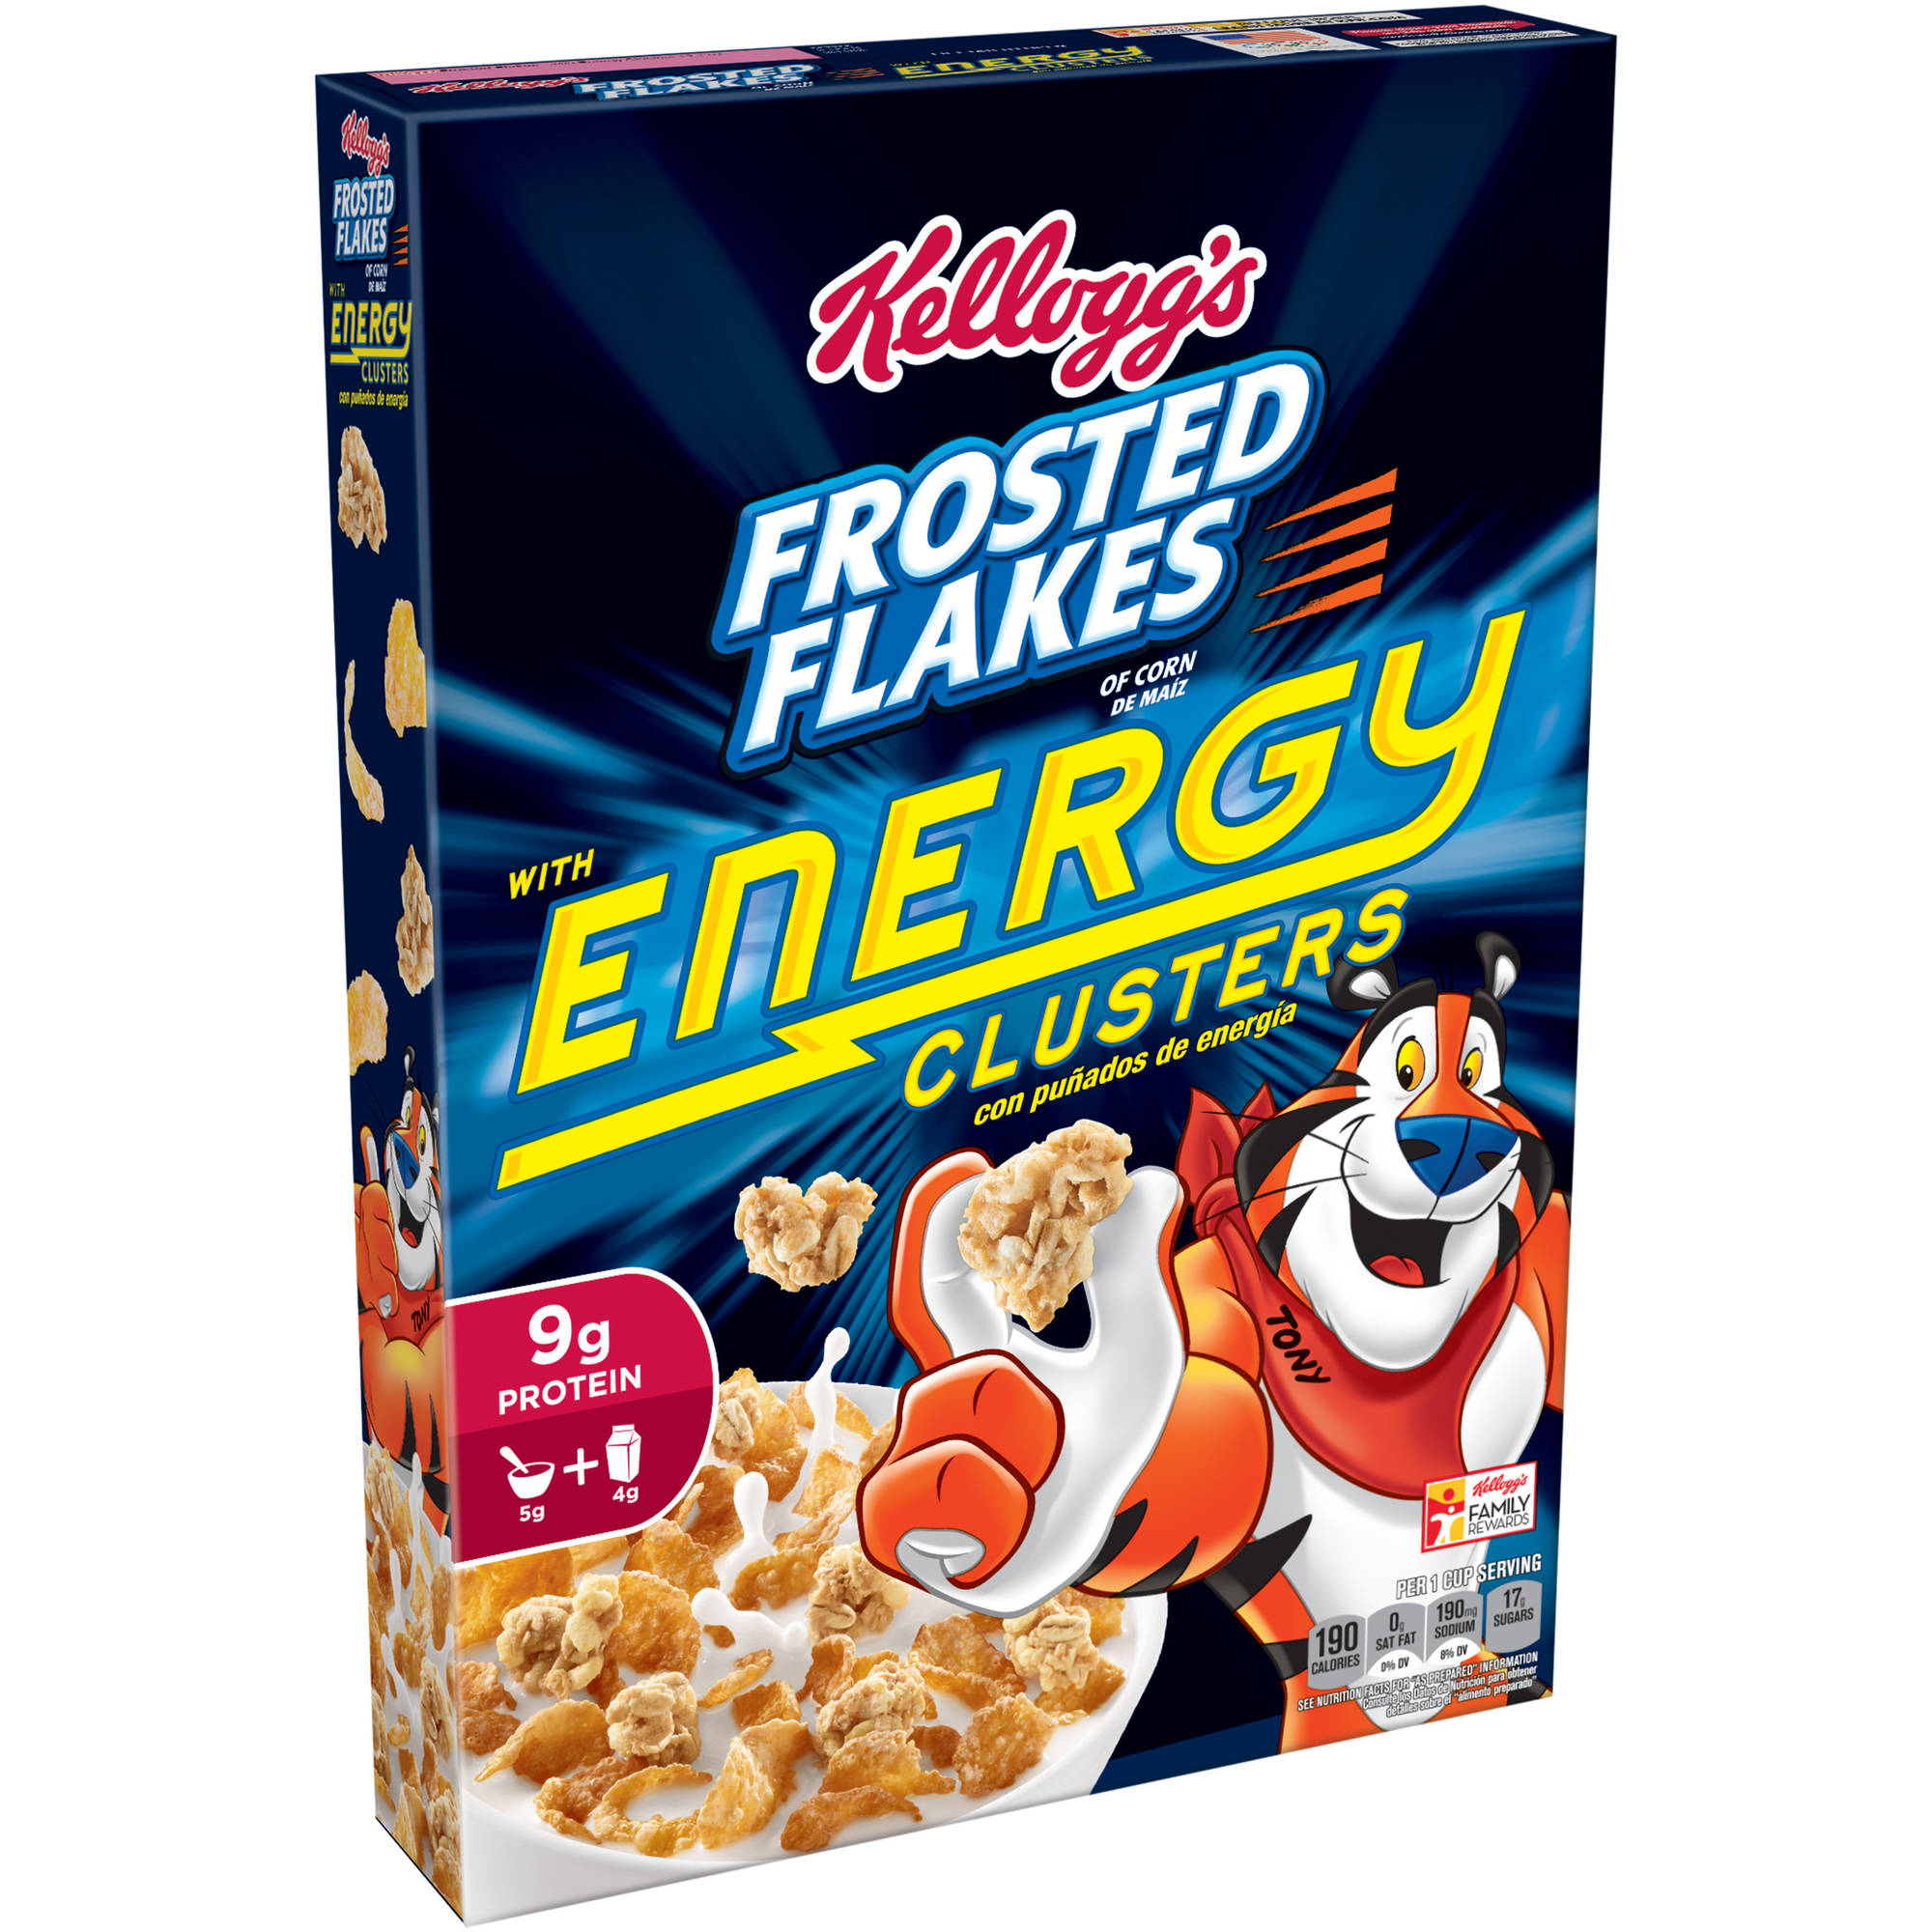 Kellogg's Frosted Flakes with Energy Clusters Cereal, 12.1 oz